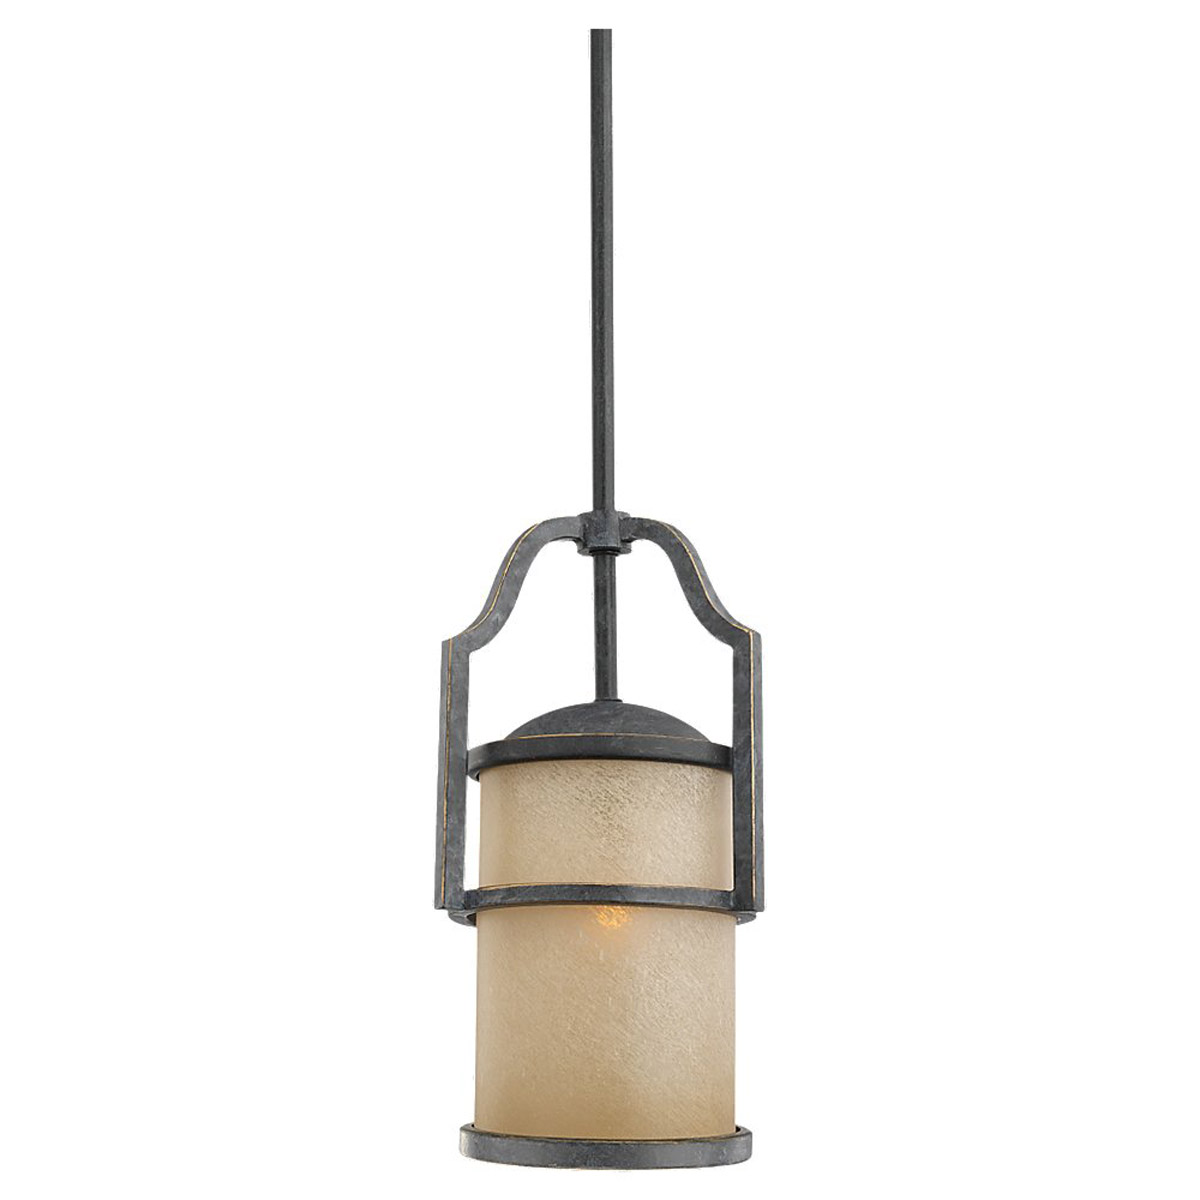 Sea Gull 61520BLE-845 Roslyn 1 Light 7 inch Flemish Bronze Mini Pendant Ceiling Light in Fluorescent photo